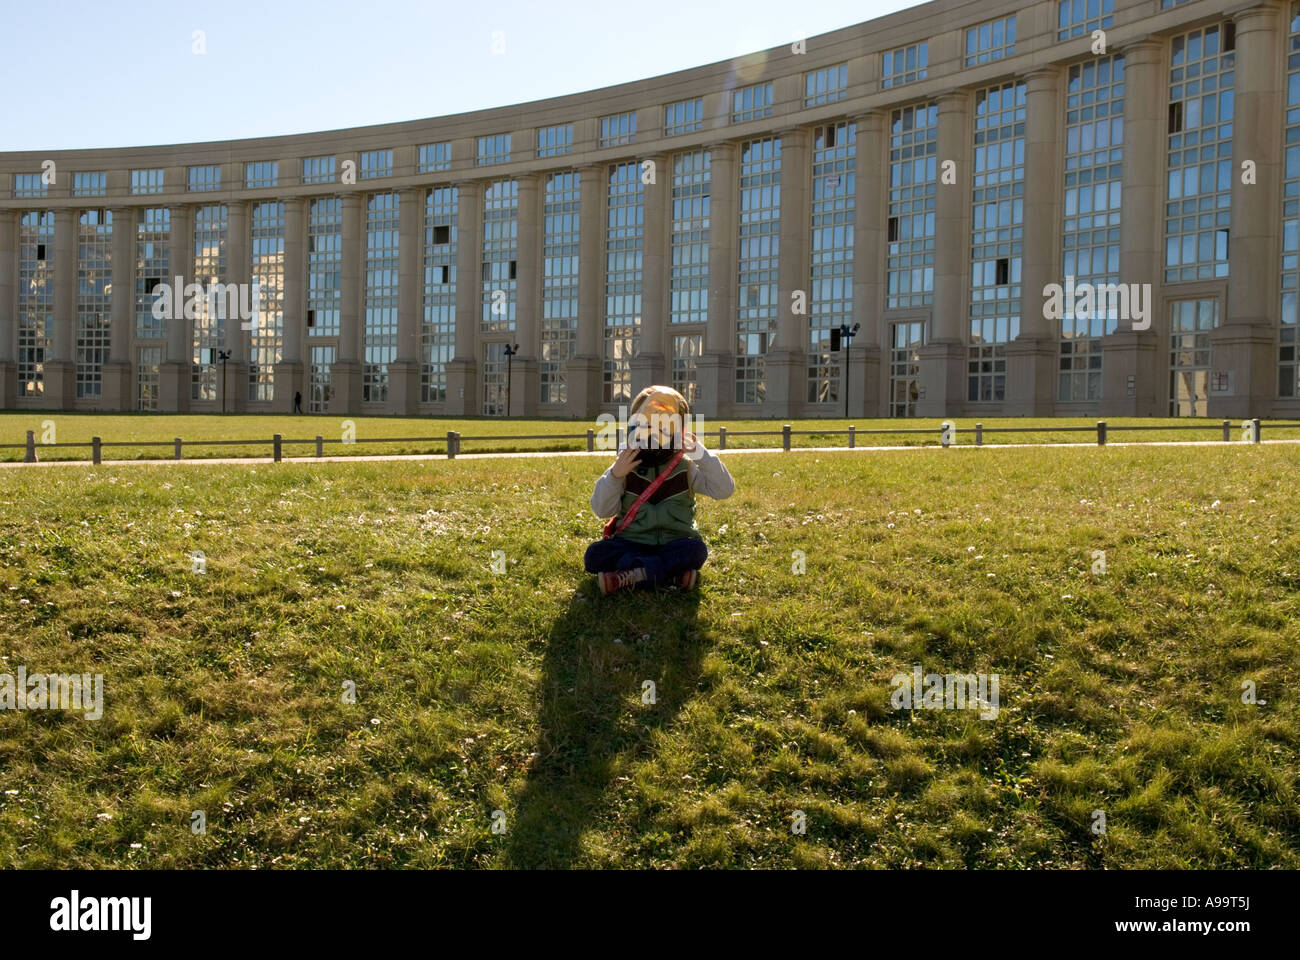 A close up of a child with superman mask sitting on grass in front of modern buildings in montpellier, france - Stock Image